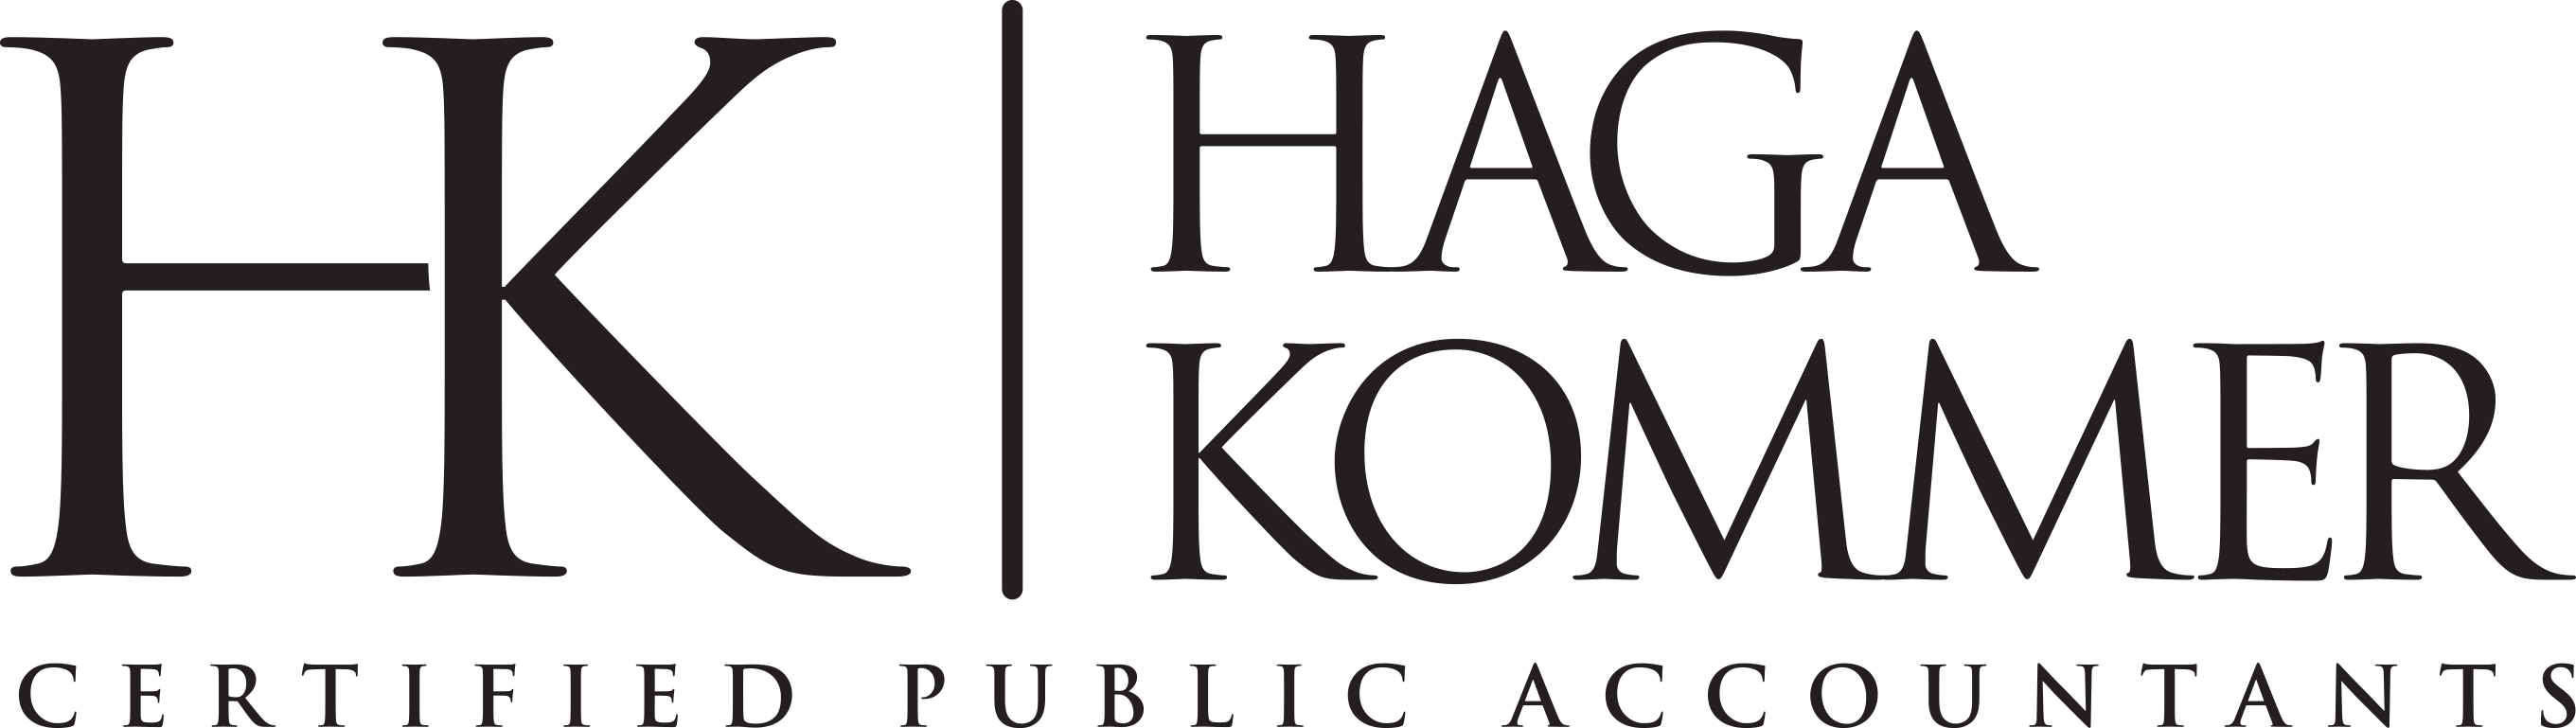 North Dakota CPA Firm | Resources Page | Haga Kommer, Ltd.